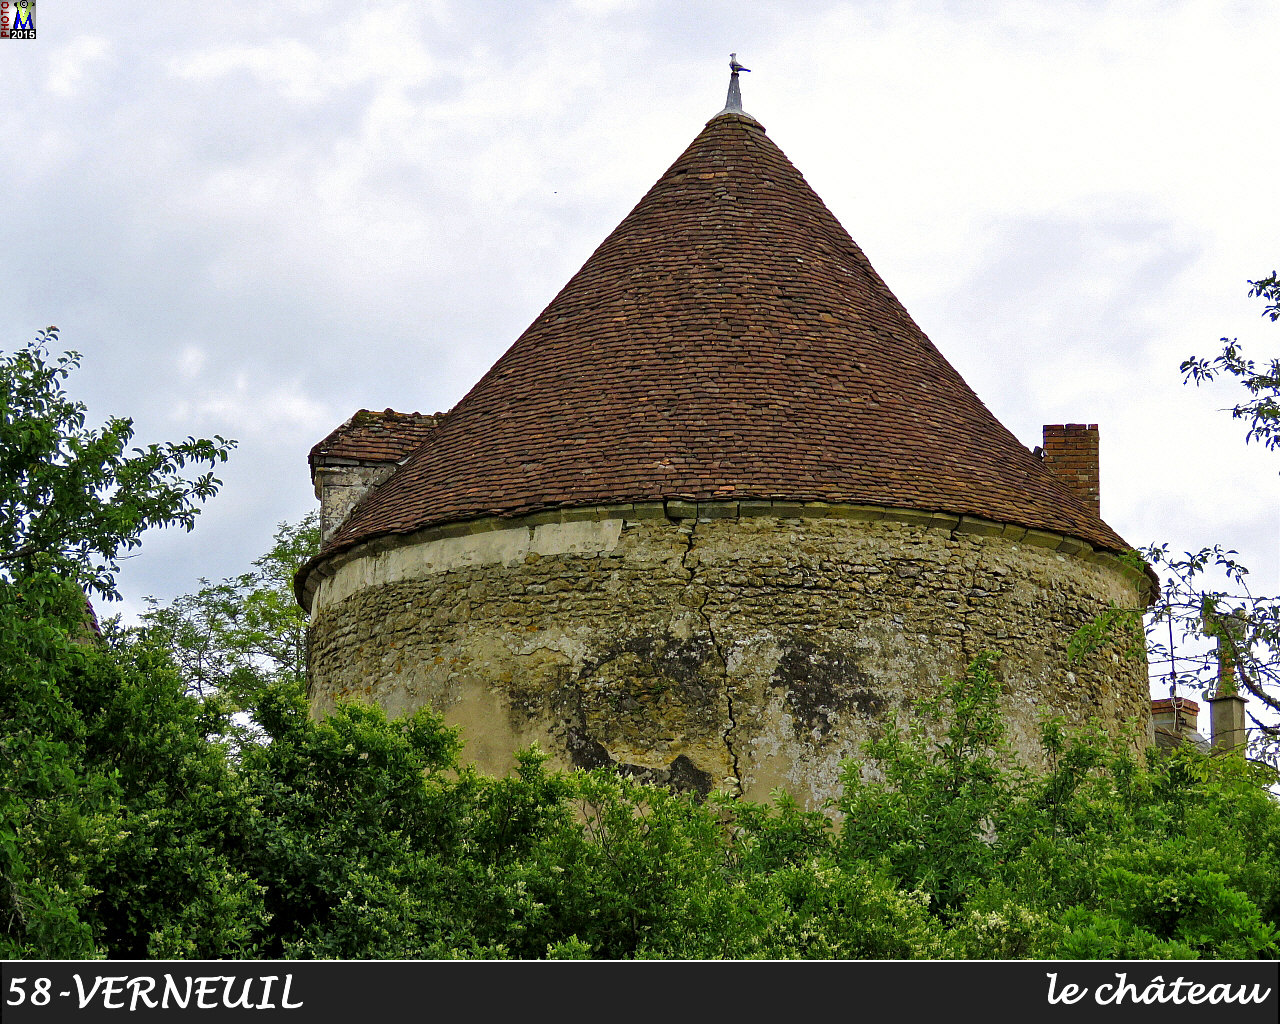 58VERNEUIL_chateau_104.jpg